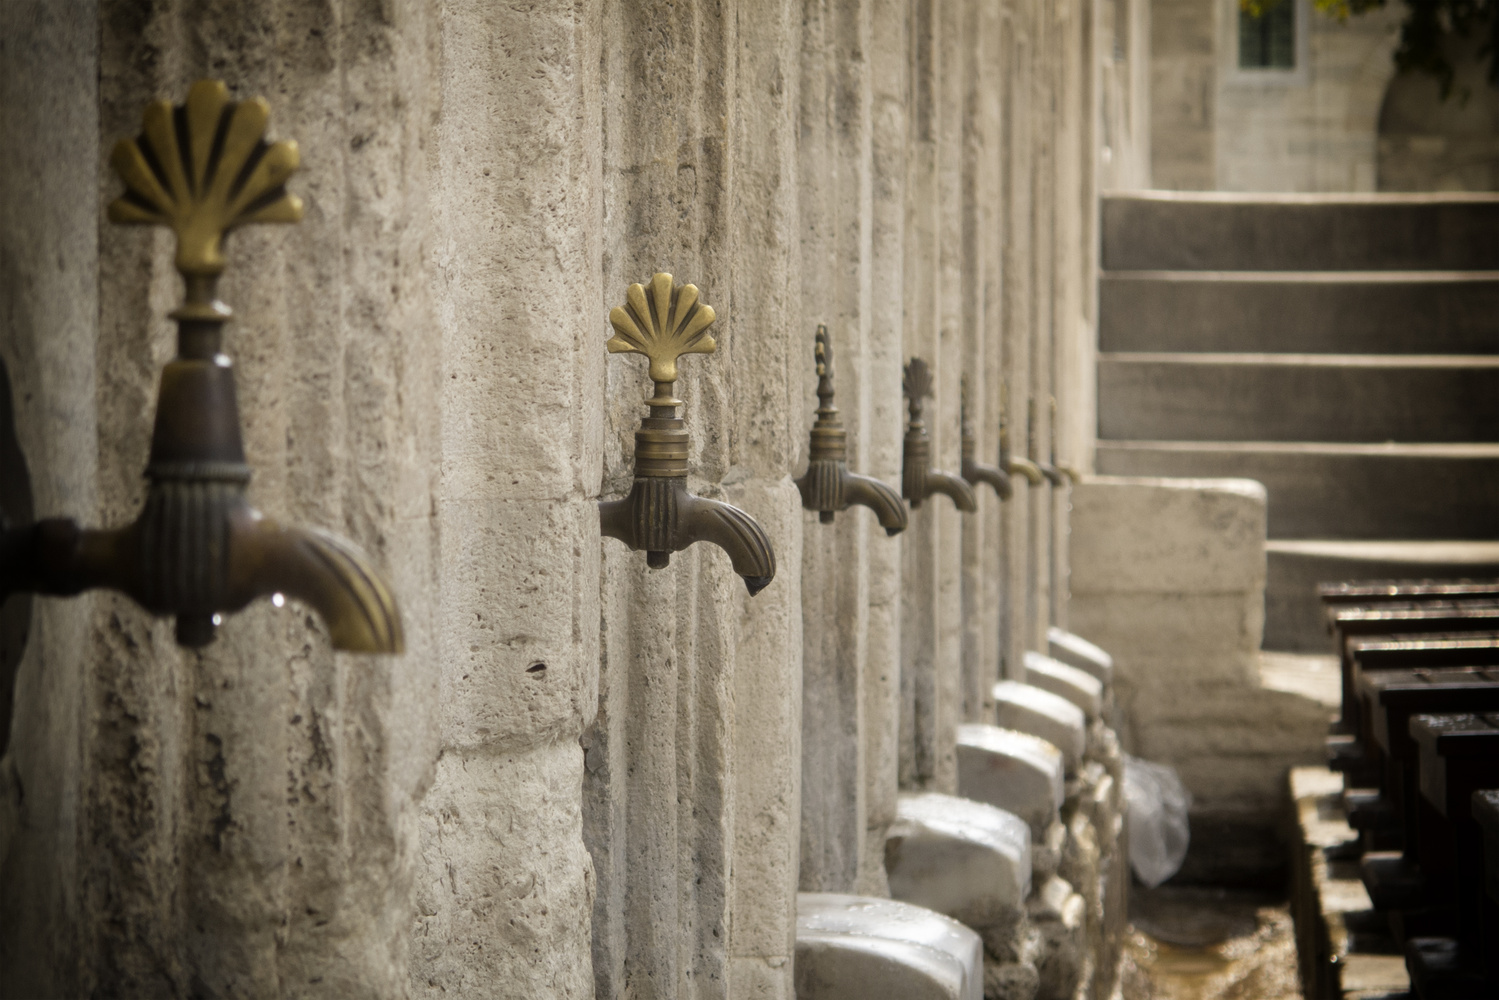 Mosque taps by Fred Preston